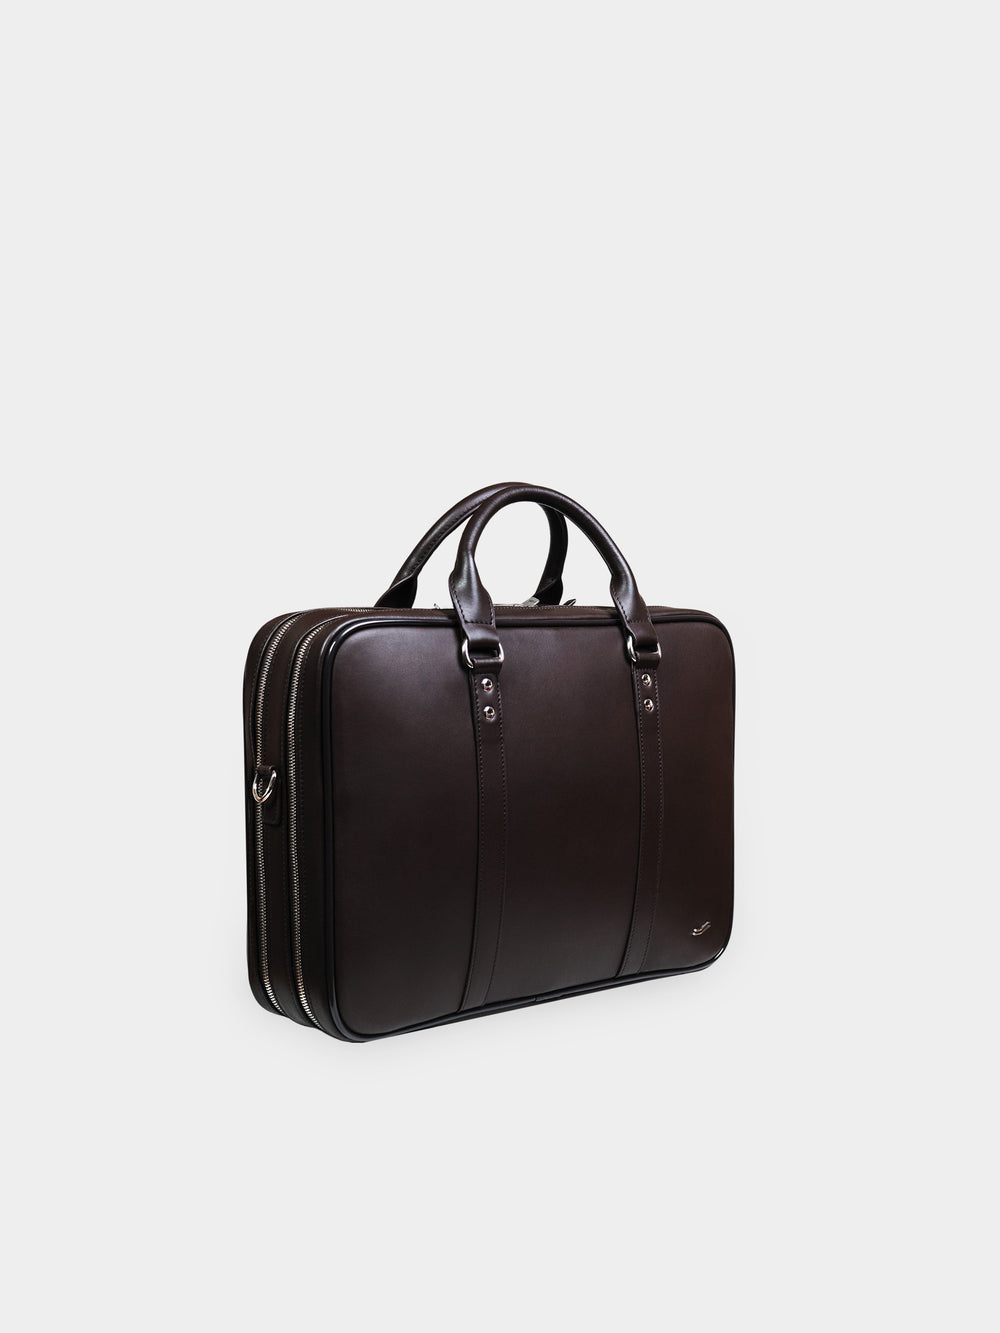 f26 brown leather double briefcase braunes leder